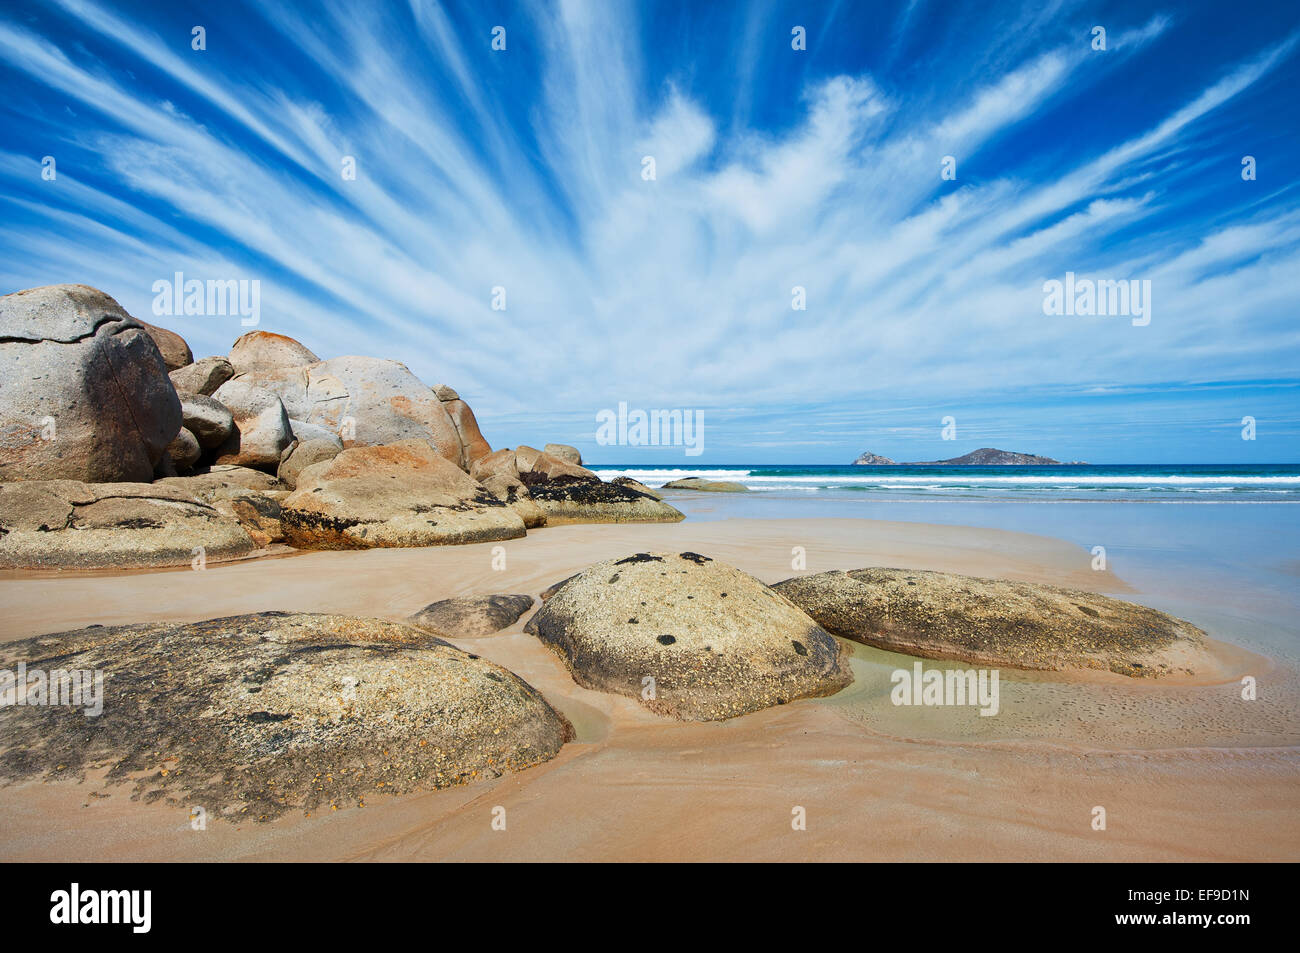 Fascinating cloud formation at Whisky Bay in Wilsons Promontory. - Stock Image